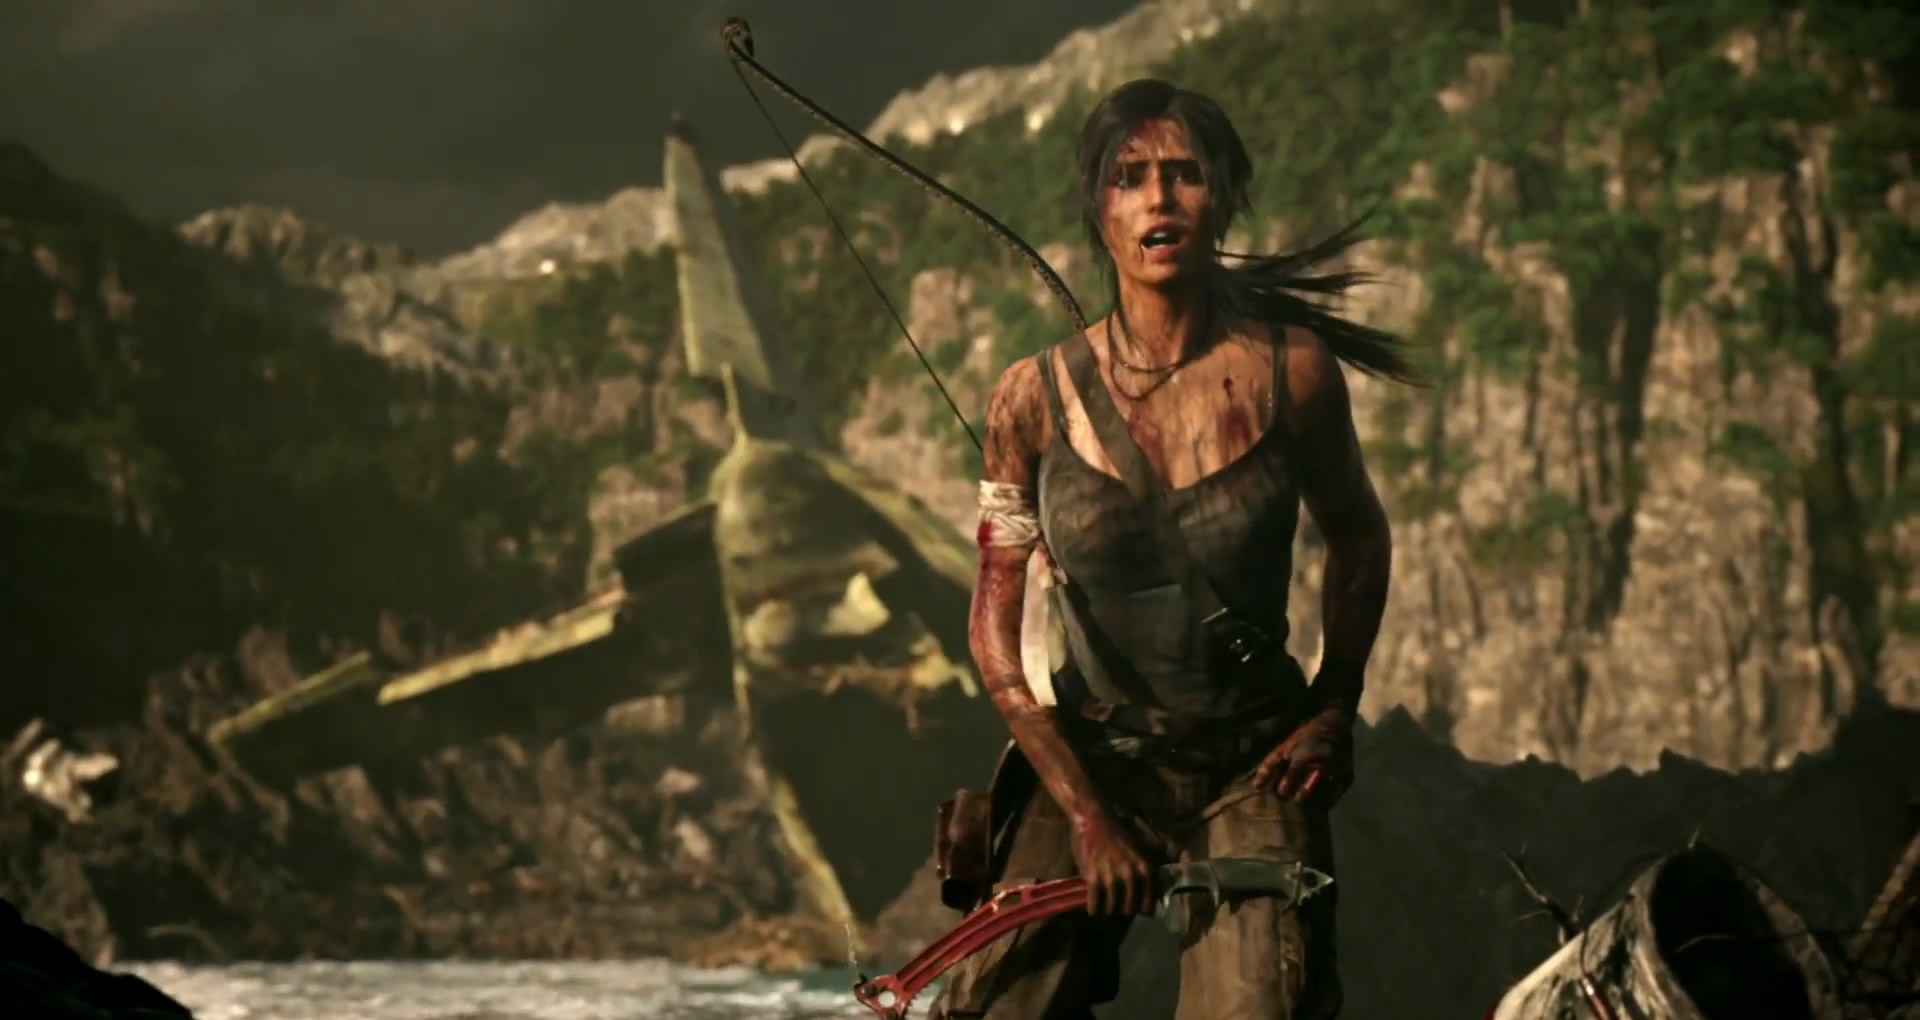 'Tomb Raider' Achievements leak, require extensive time in multiplayer